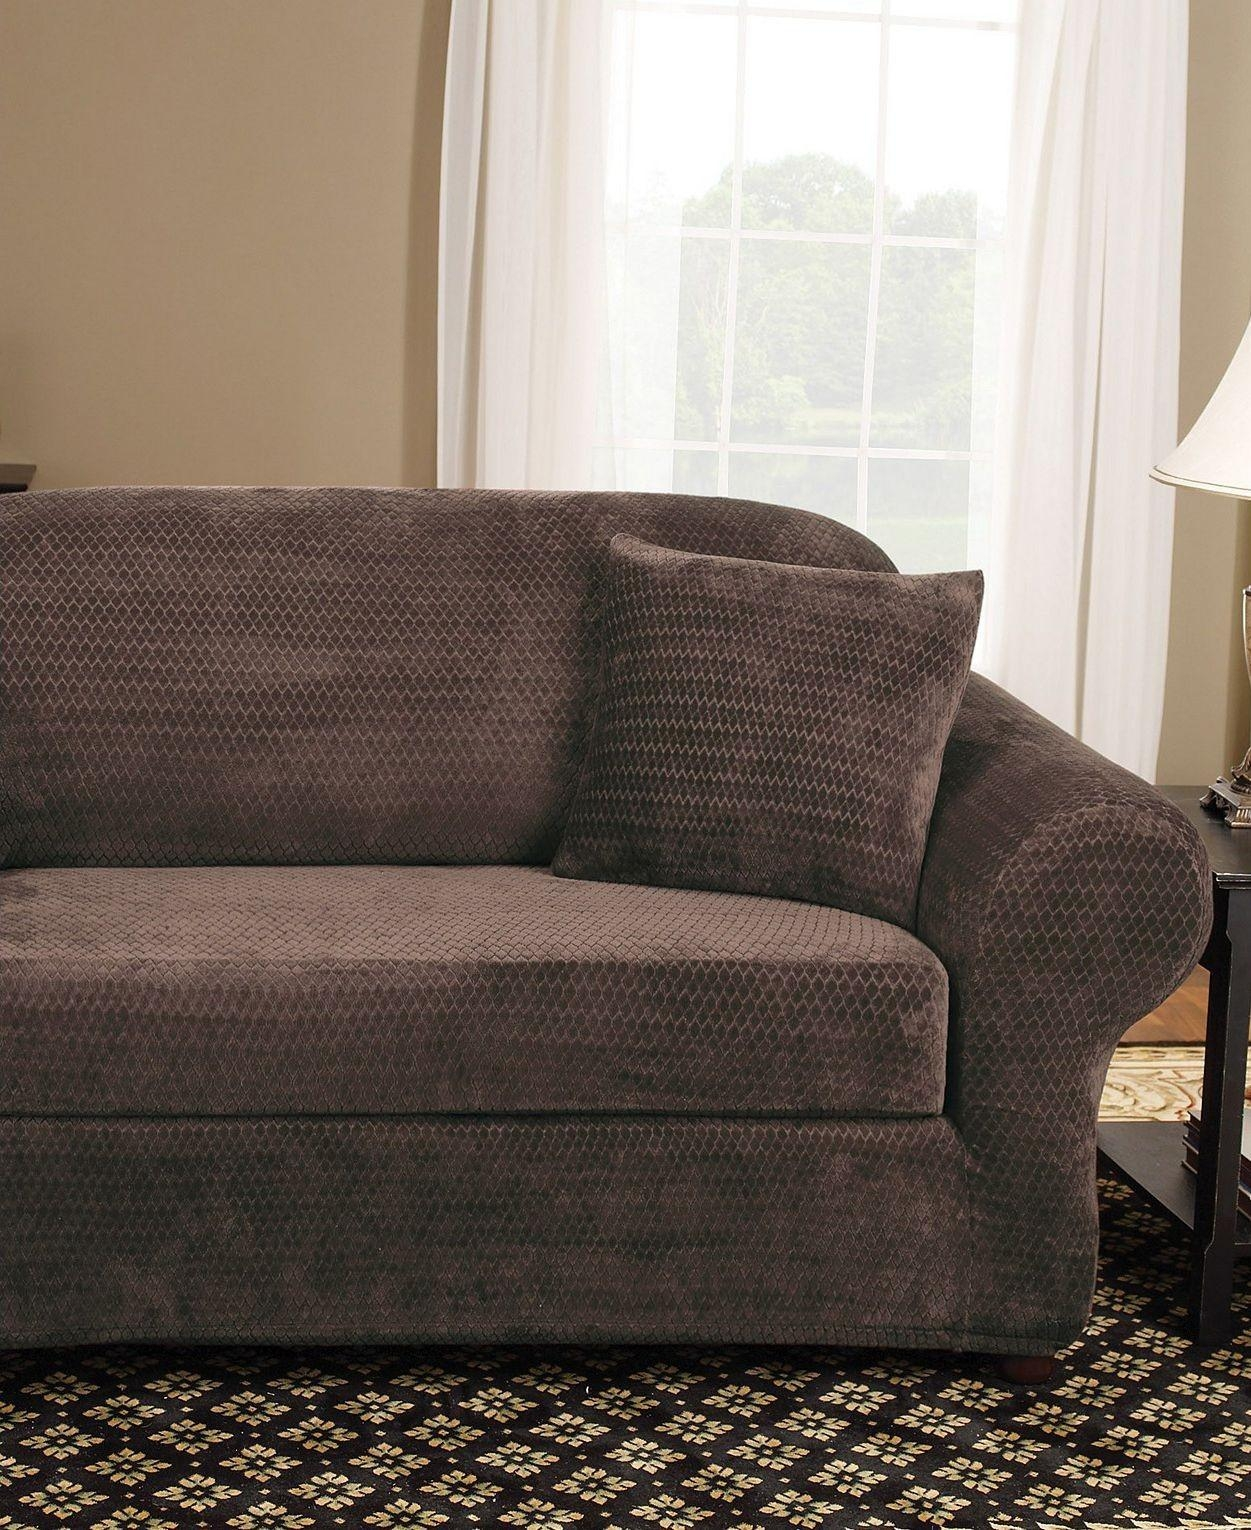 Sure Fit Stretch Suede 2 Piece Sofa Slipcover Chocolate With 2 Piece Sofa Covers (View 26 of 27)